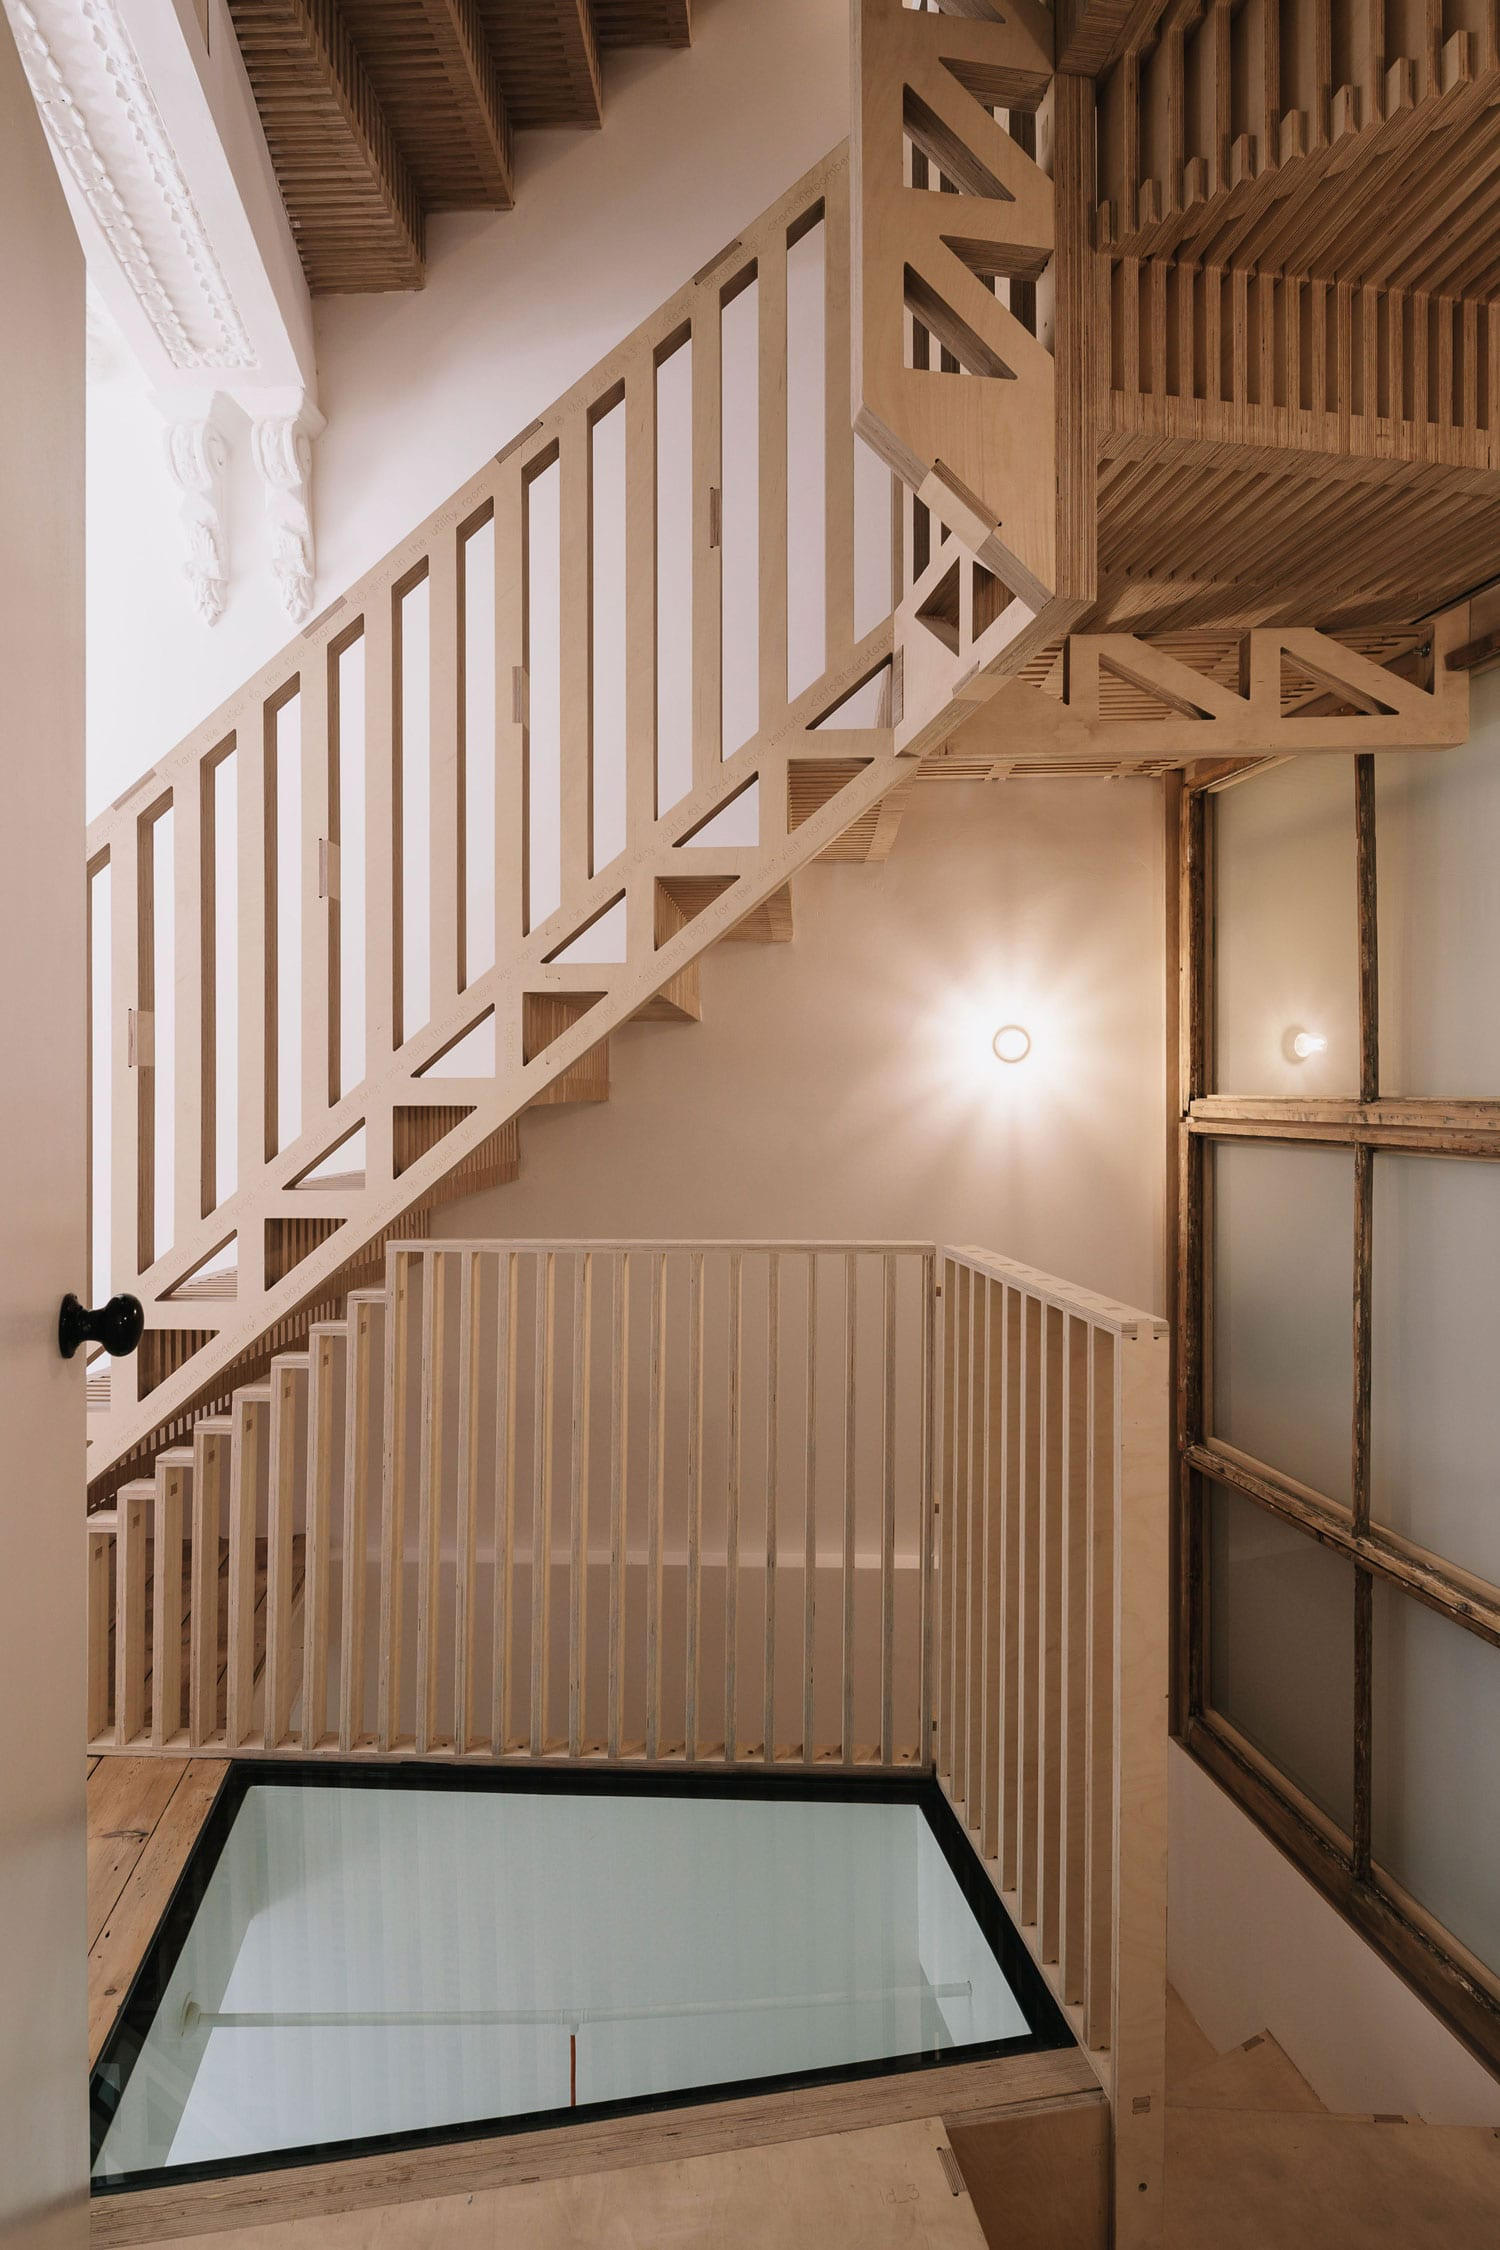 Radical Refurbishment of a Former Squat House in East London by Tsuruta Architects | Yellowtrace